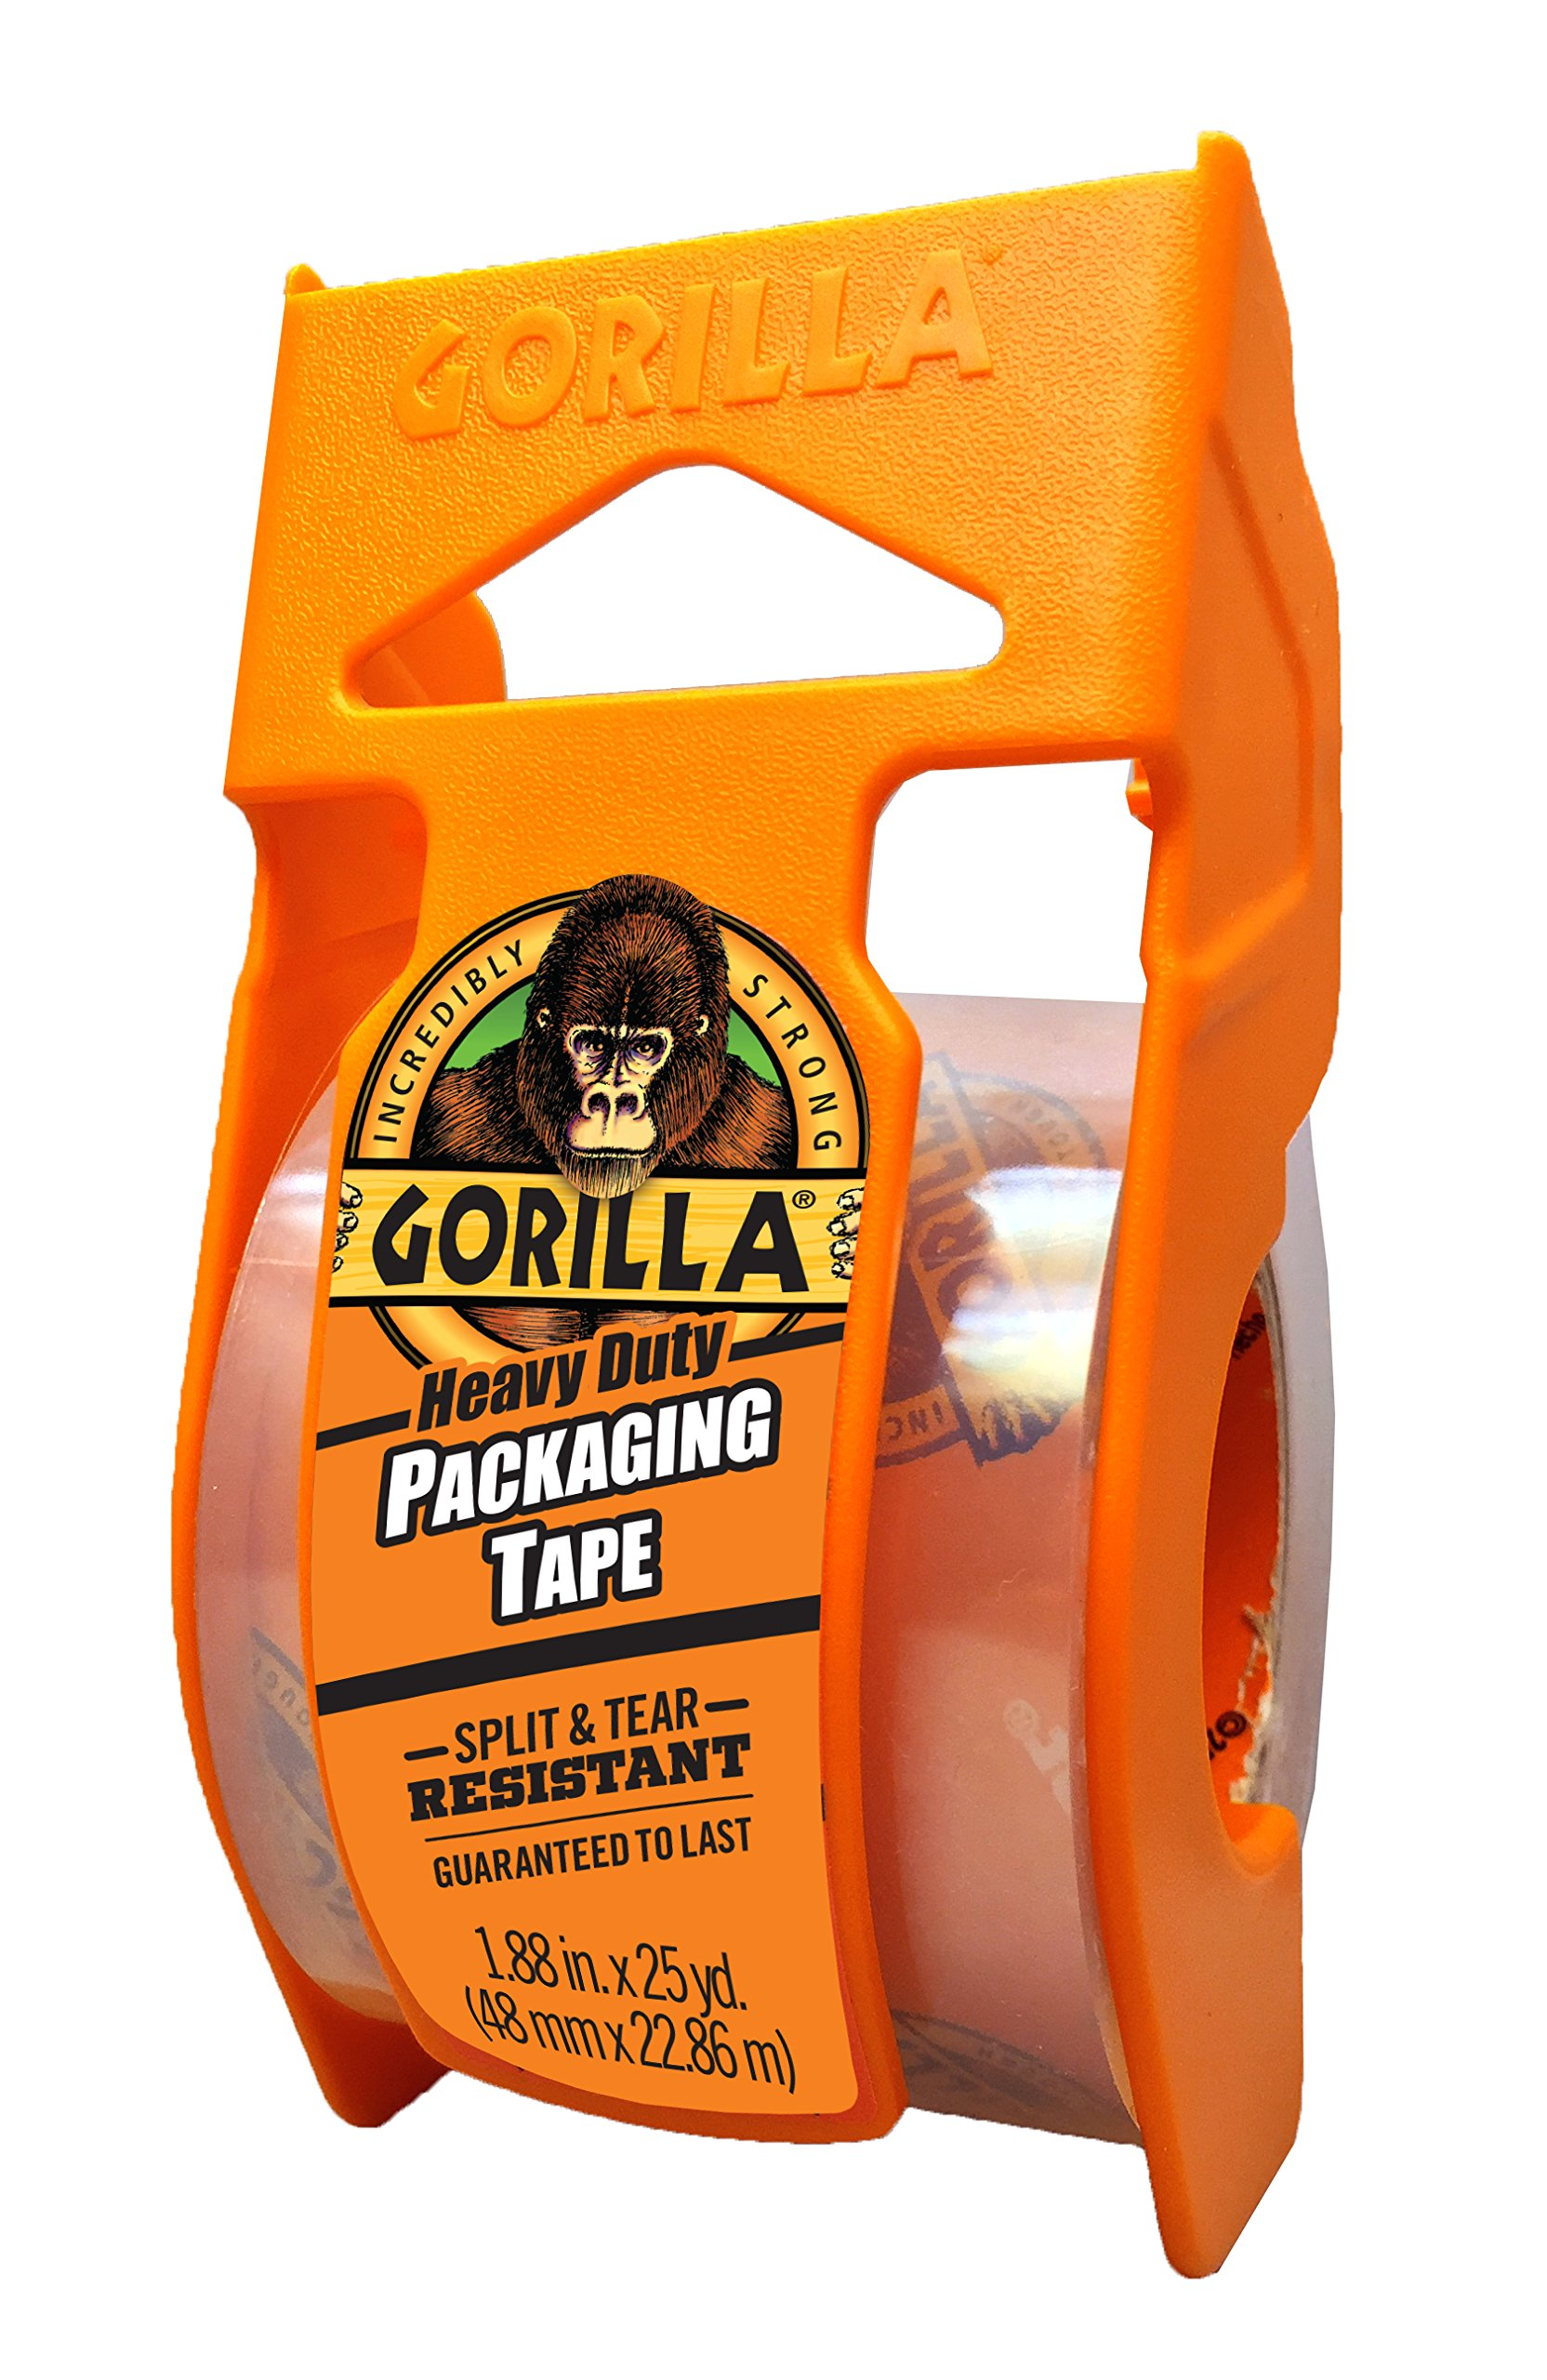 Gorilla Heavy Duty Packing Tape with Dispenser for Moving, Shipping and Storage, 1.88'' x 25 yd, Clear, (Pack of 1)